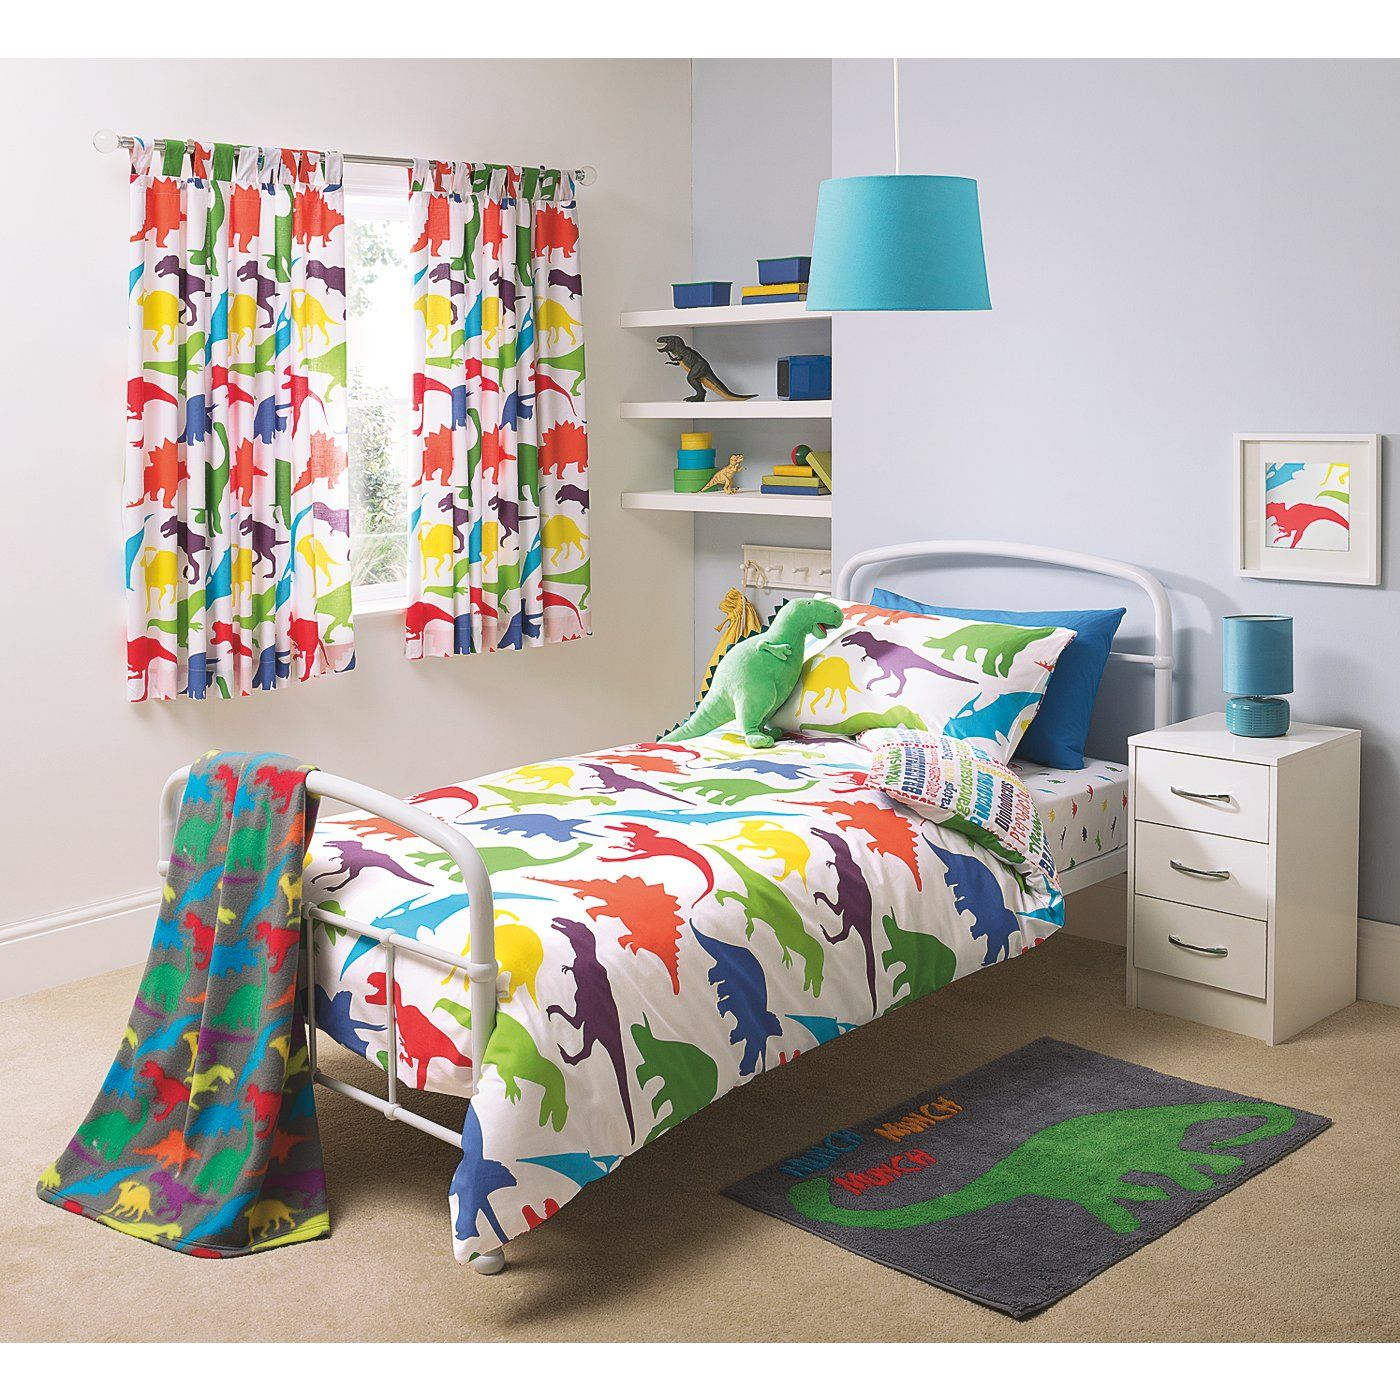 Buy George Home Dino Bedroom Set from our Bedding range today from